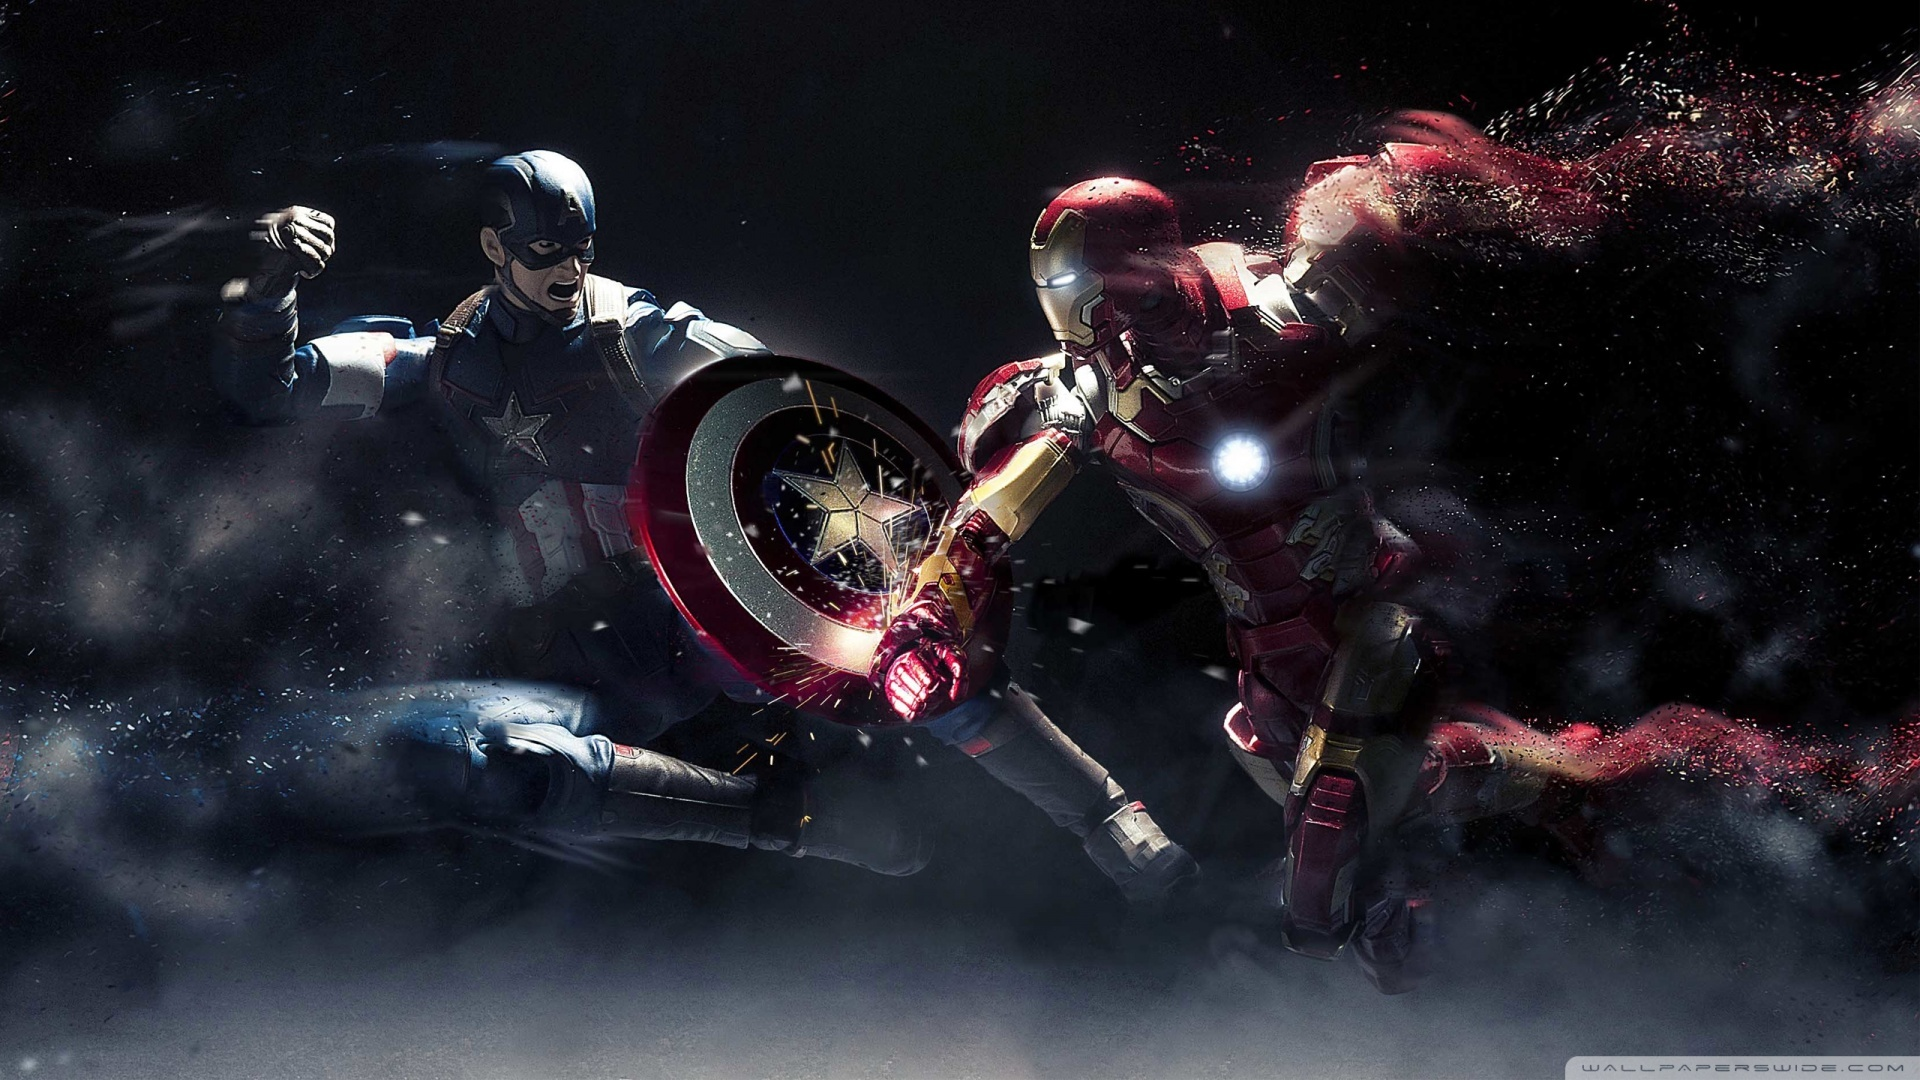 captain america vs iron man 1080p 4k wallpaper